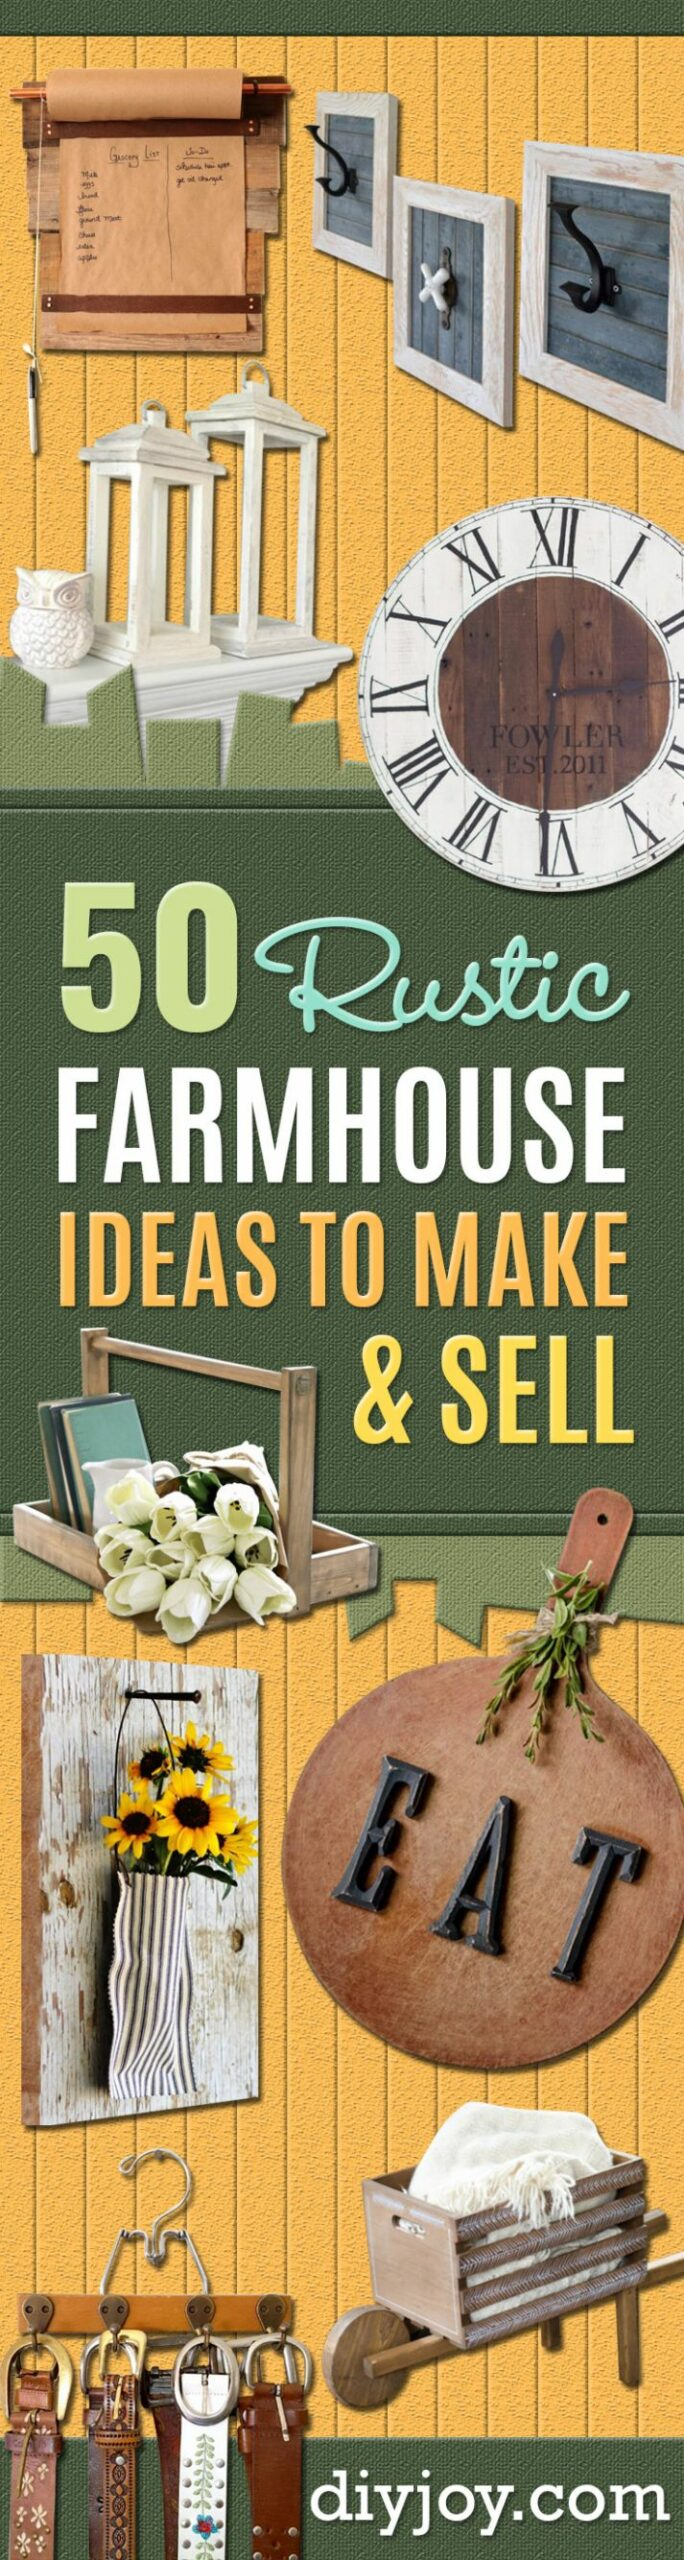 10 Rustic DIY Farmhouse Crafts to Make and Sell